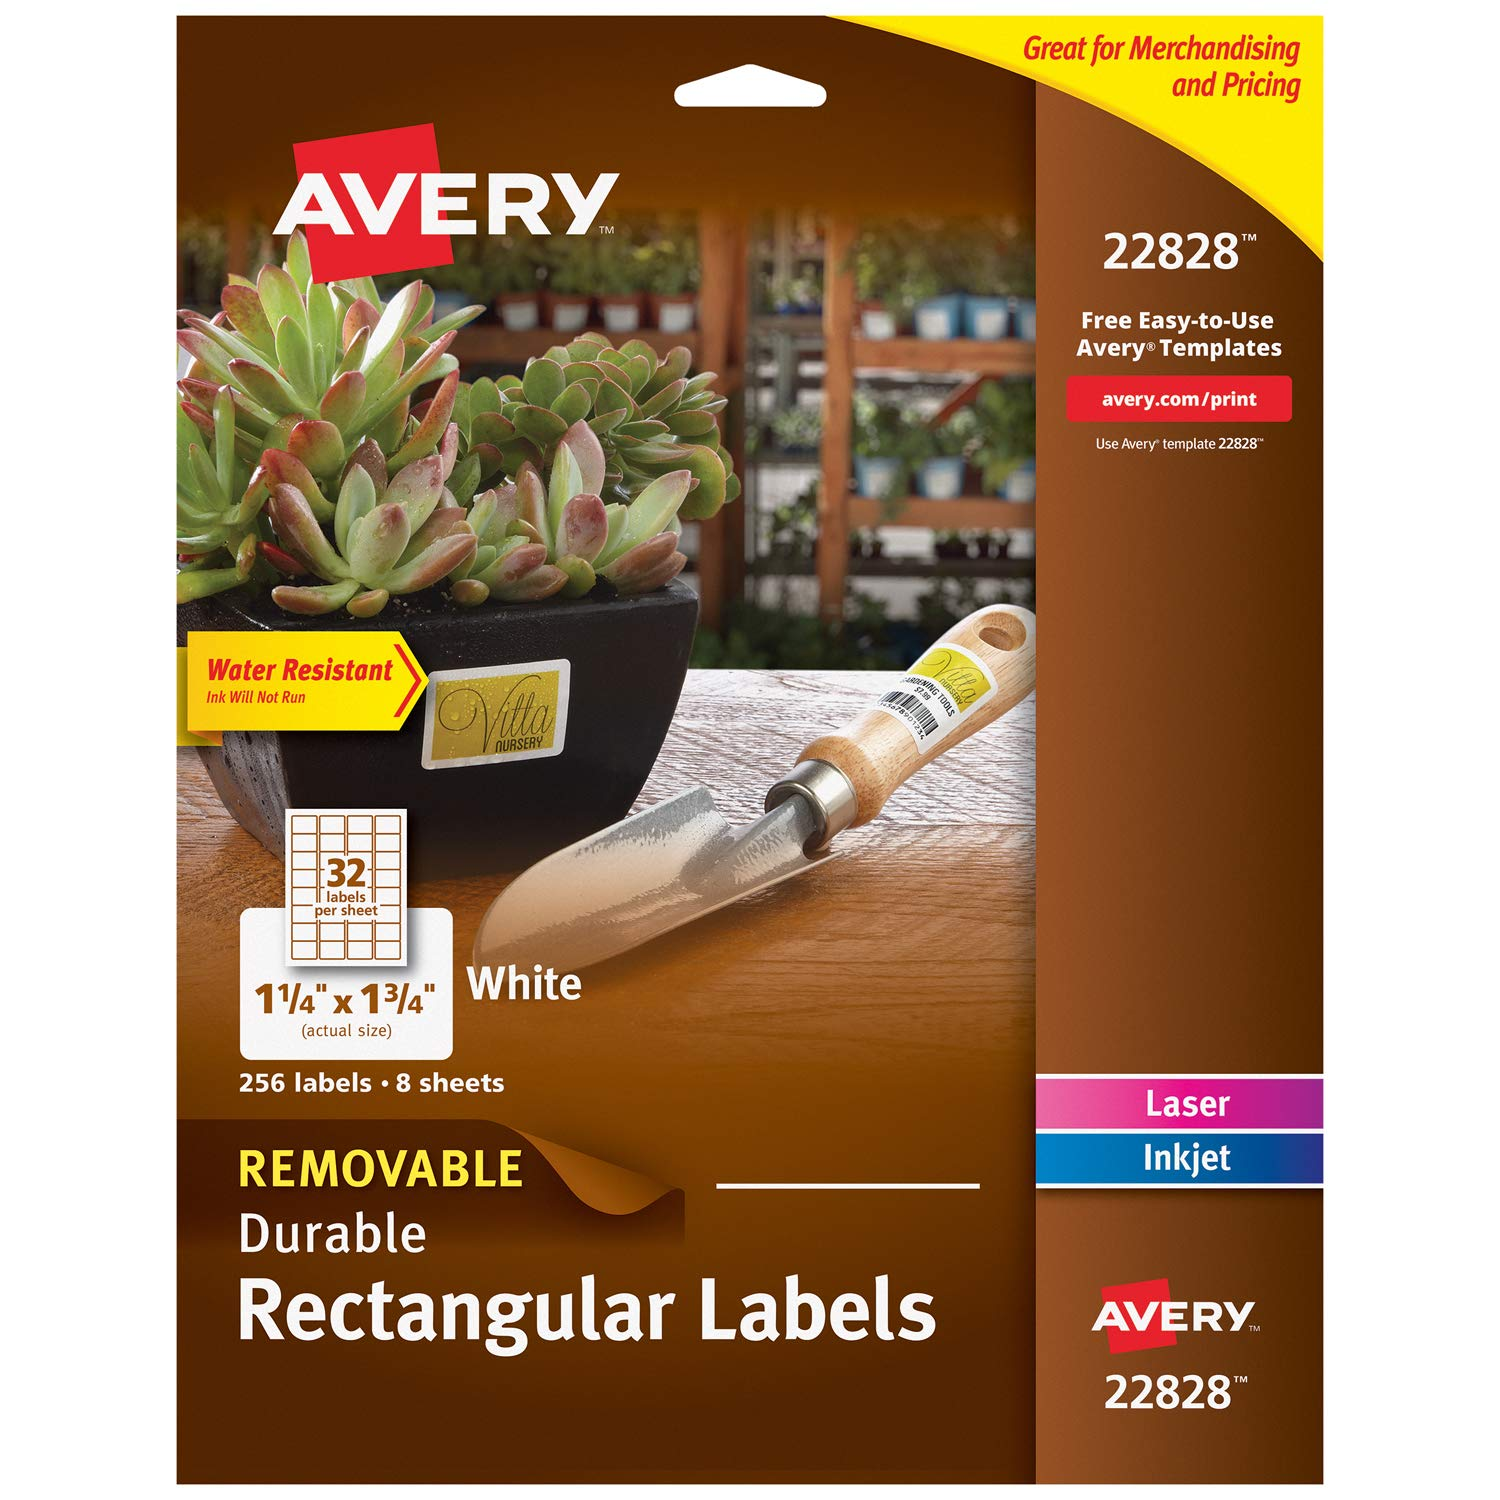 "Avery Removable Labels for Laser & Inkjet Printers, 1.25"" x 1.75"", 256 Water Resistant Labels (22828)"